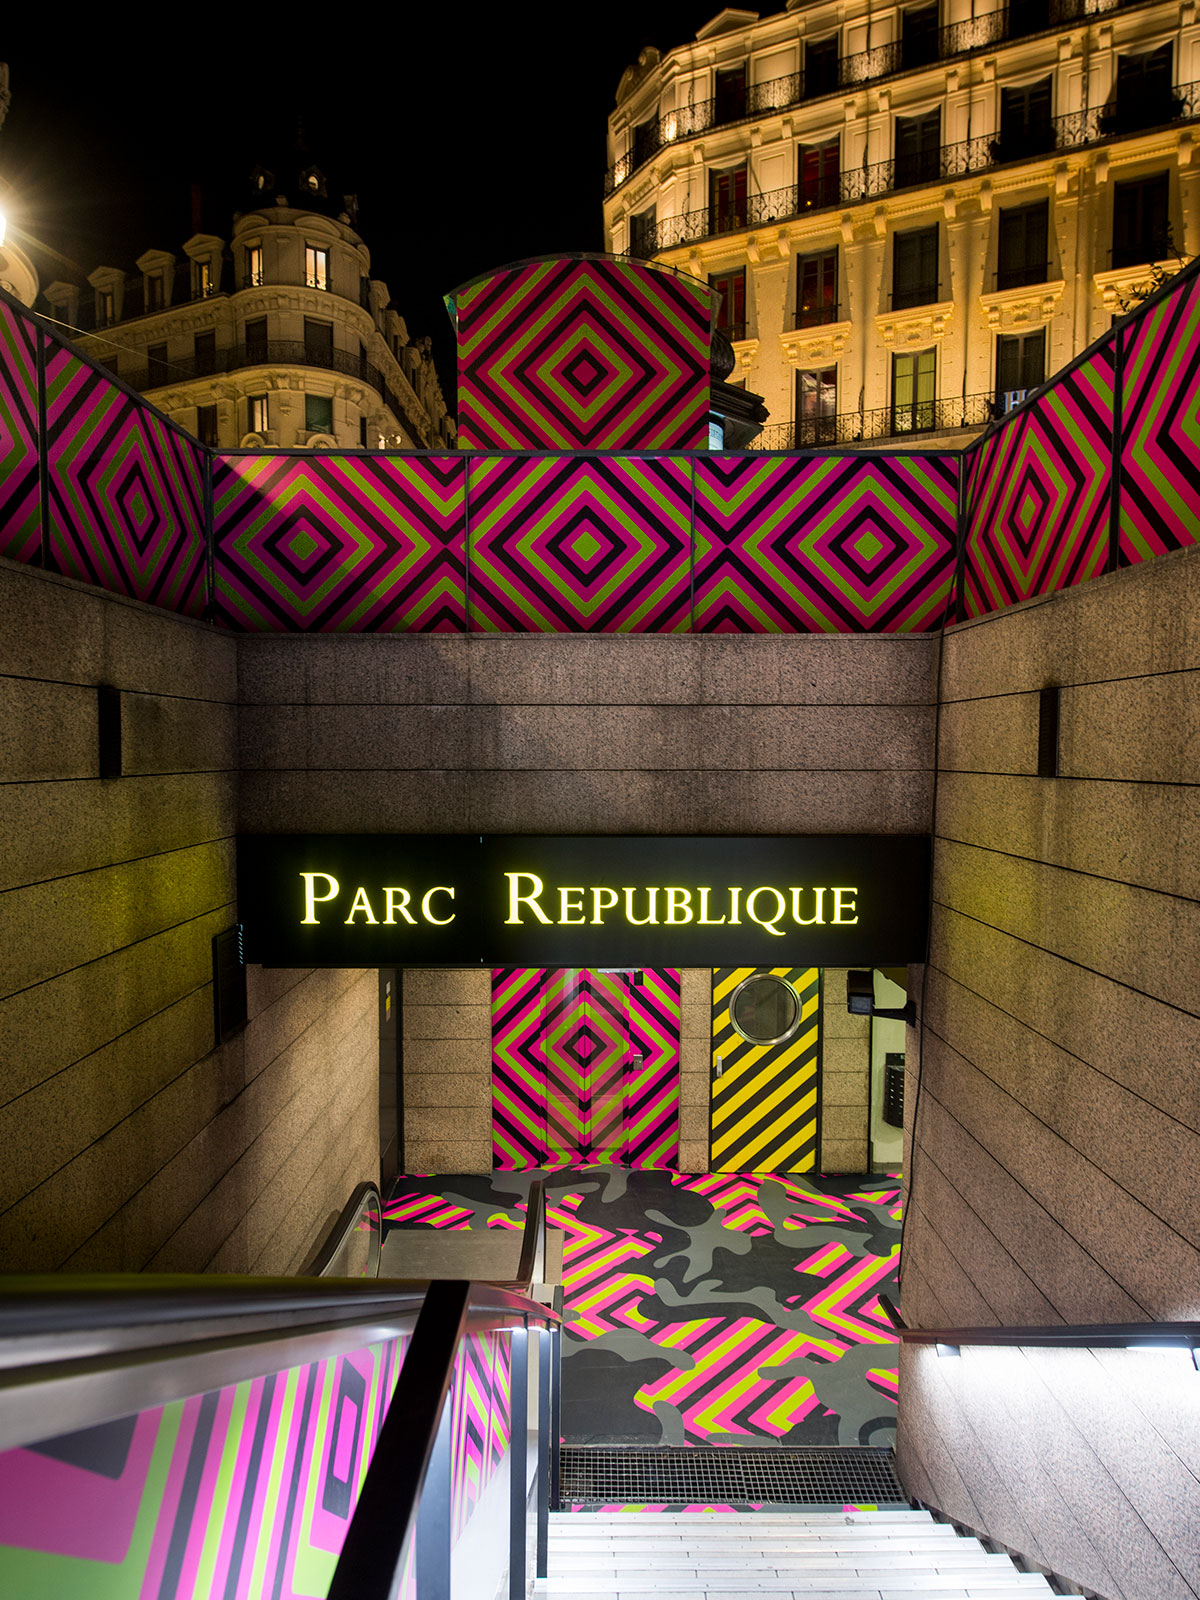 lpa_parc_republique_4.jpg